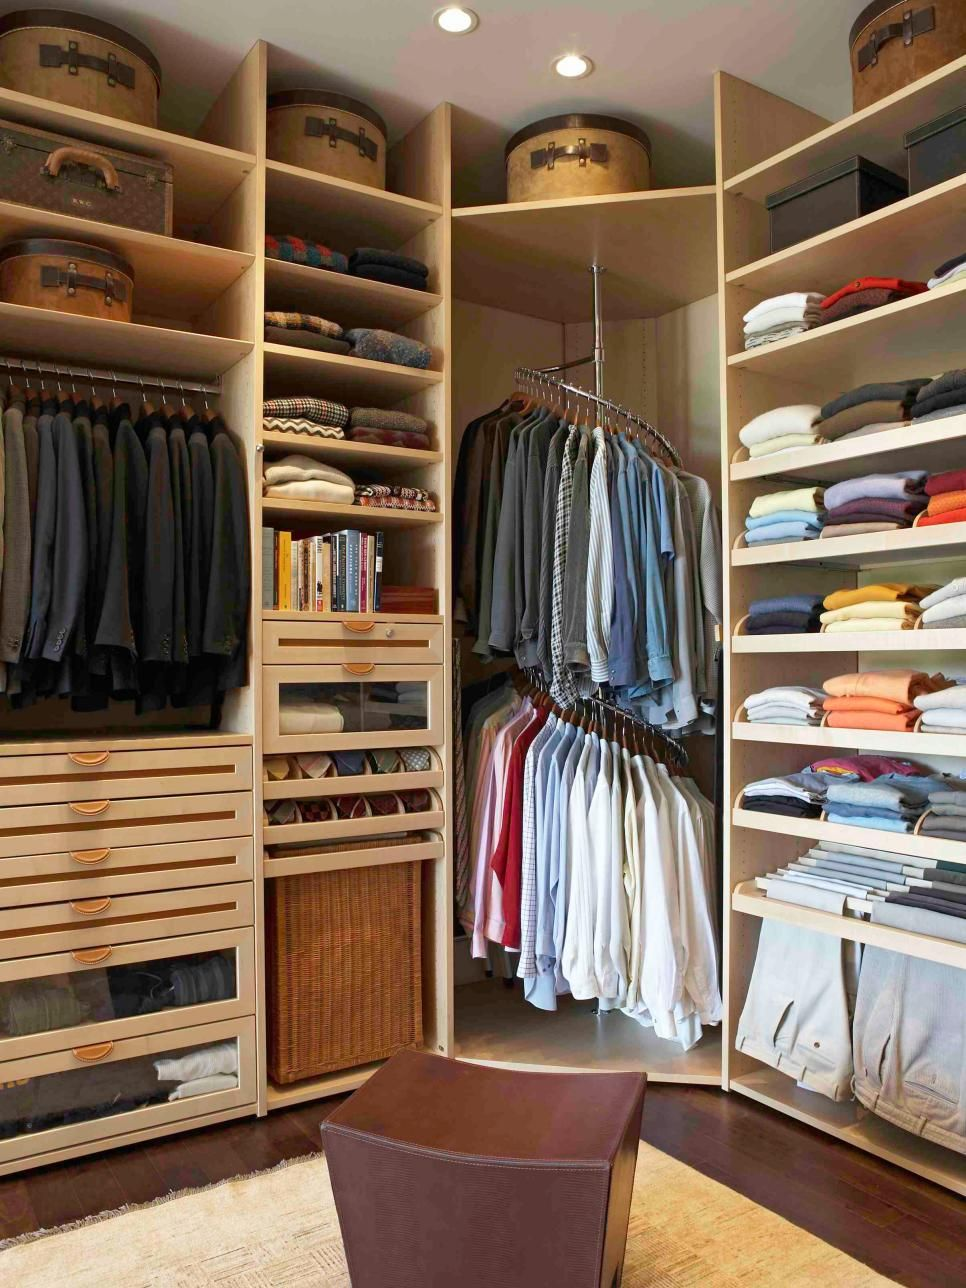 With An Abundance Of Clothes Shoes And Accessories It S Easy For Closets To Turn Into Cluttered Closet Bedroom Master Bedroom Closet Closet Remodel